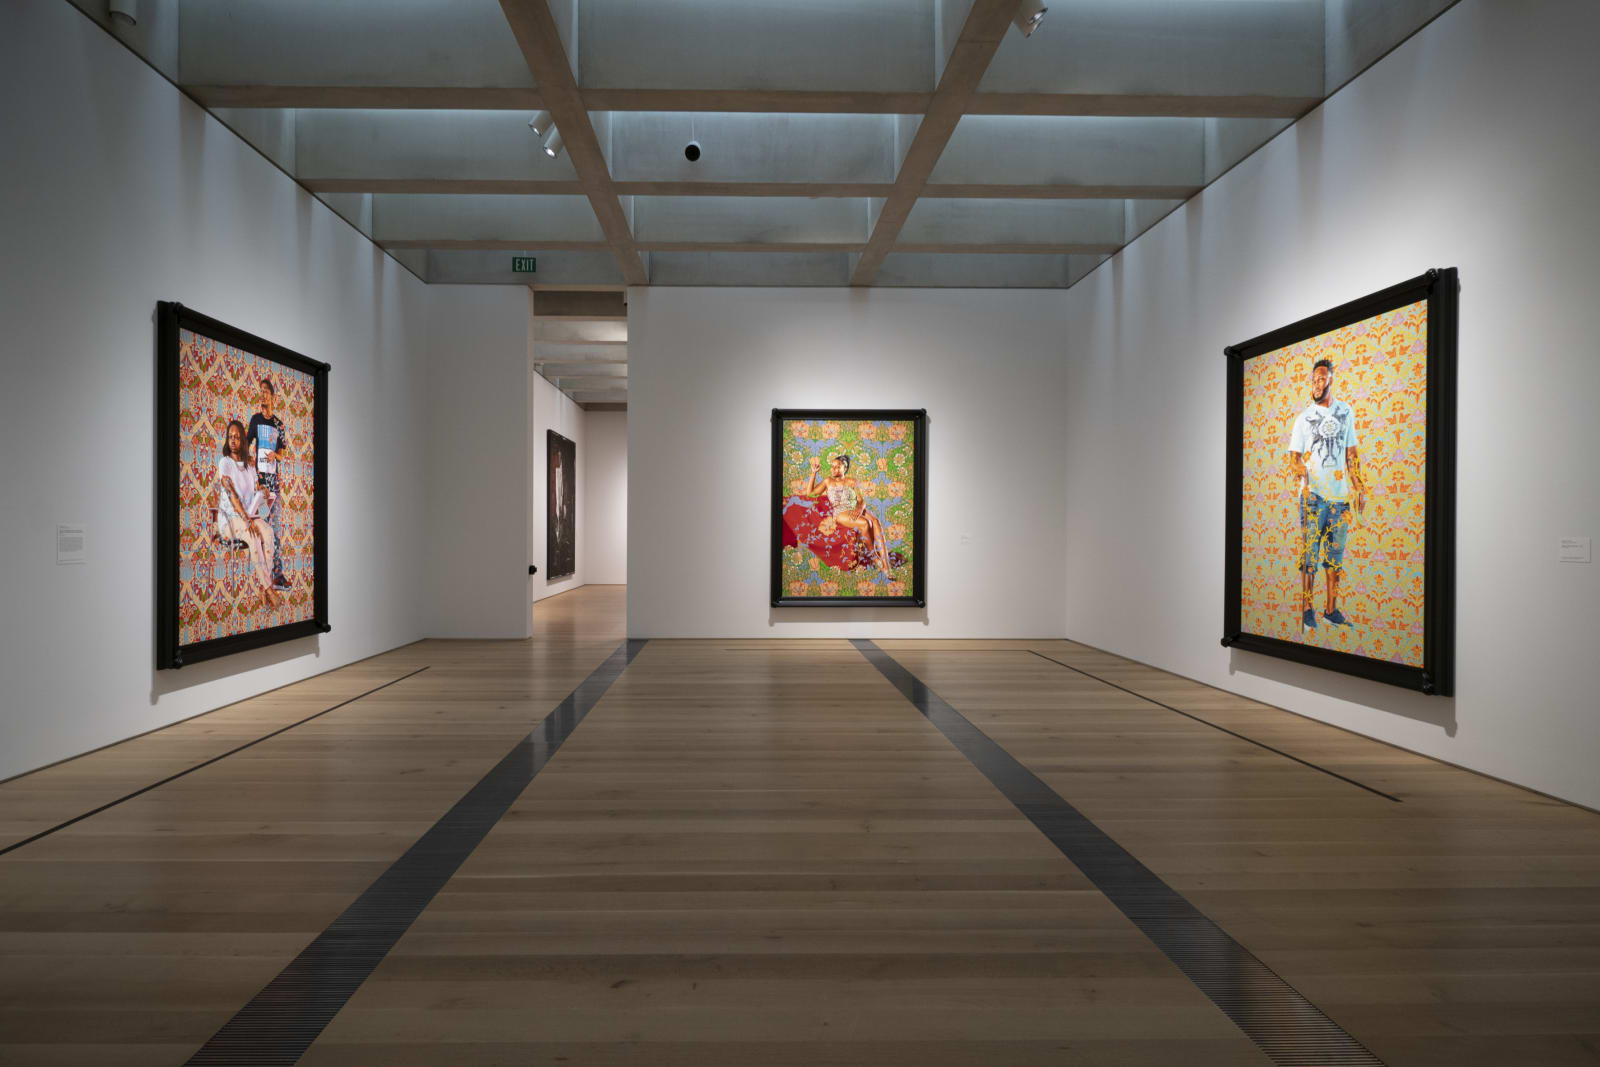 <p>Installation view: 'Kehinde Wiley: Saint Louis', Saint Louis Art Museum, Saint Louis, MO (2018-2019)</p>